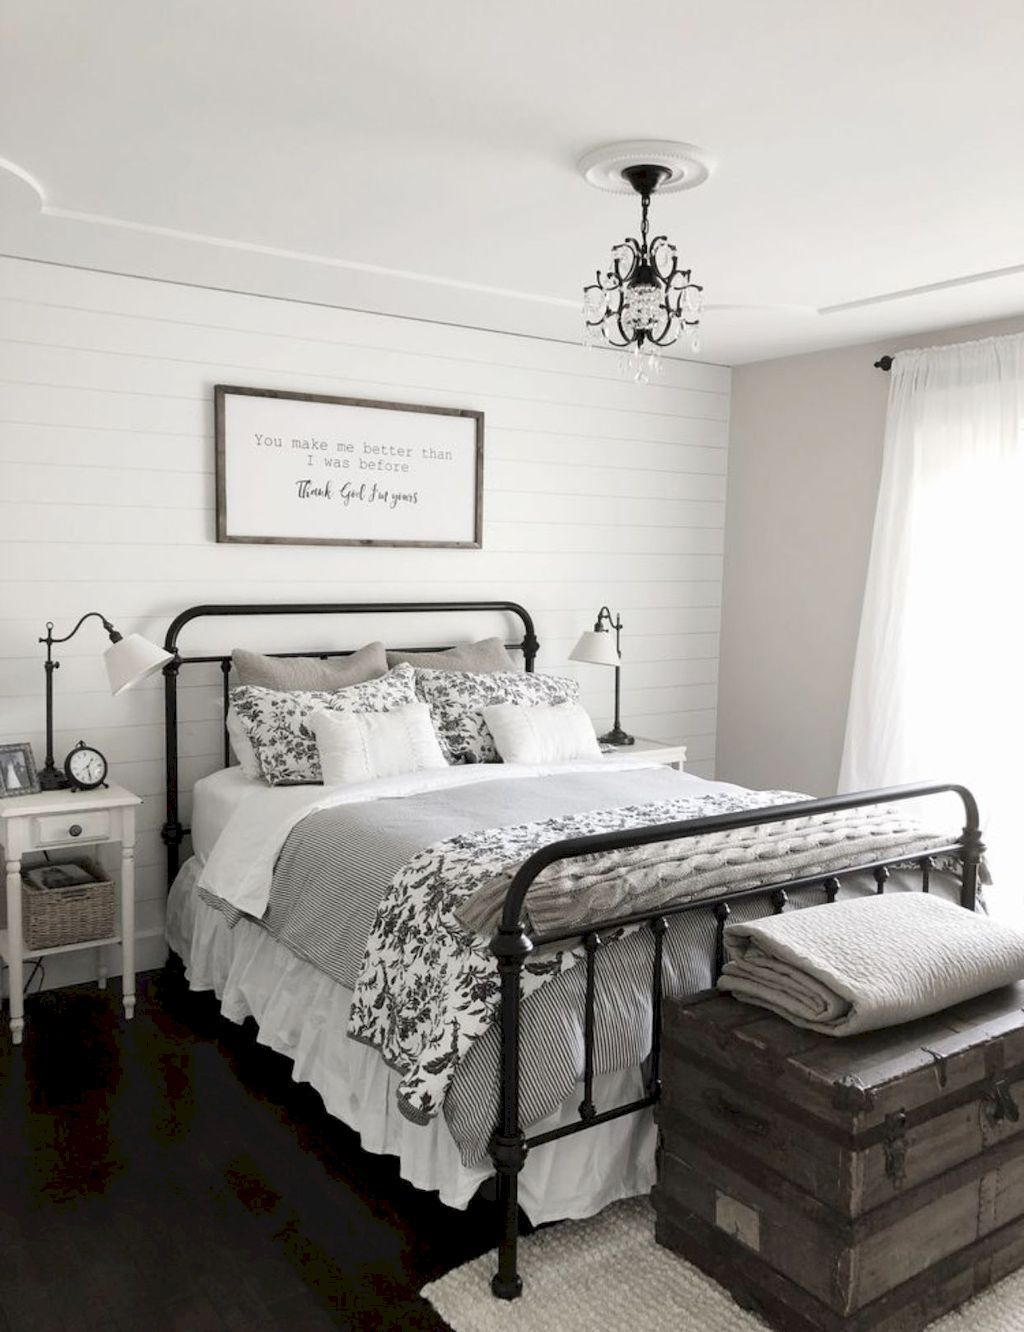 65 Minimalist Master Bedroom Ideas In 2020 With Images Farmhouse Bedroom Decor Modern Farmhouse Bedroom Home Decor Bedroom